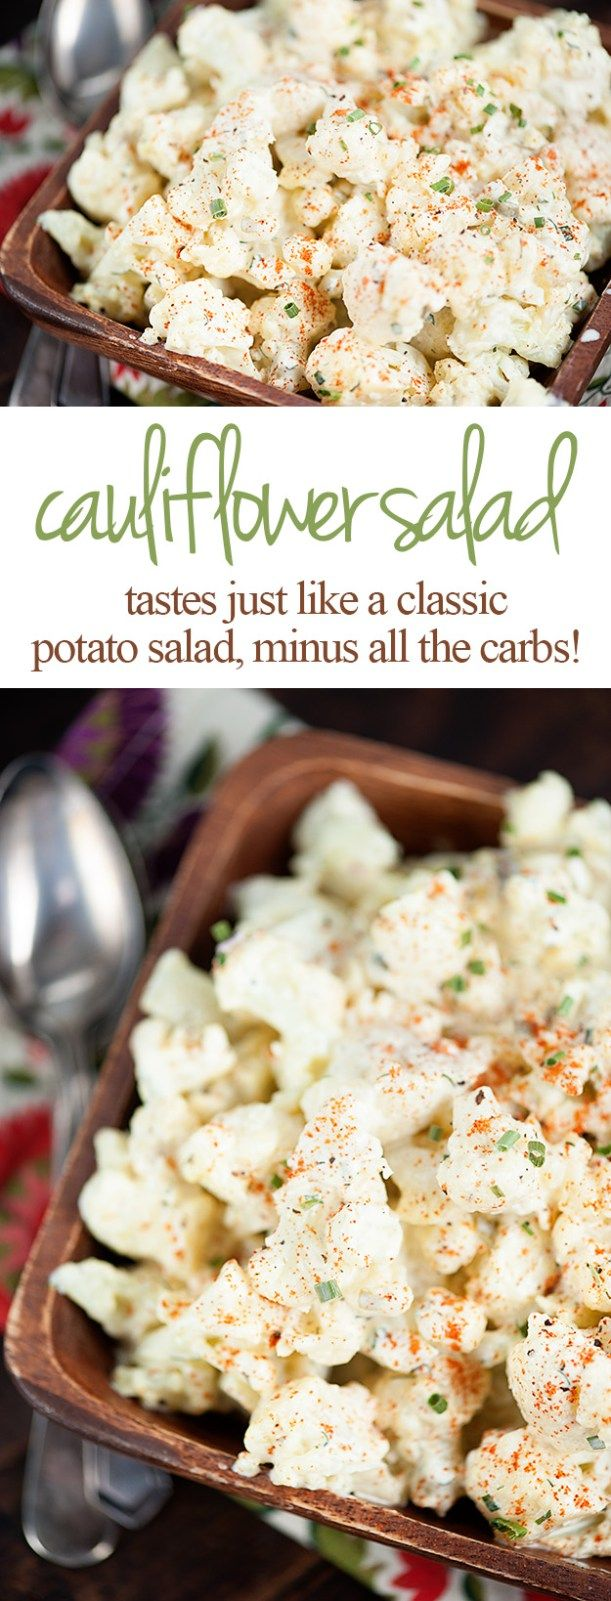 mock potato salad recipe